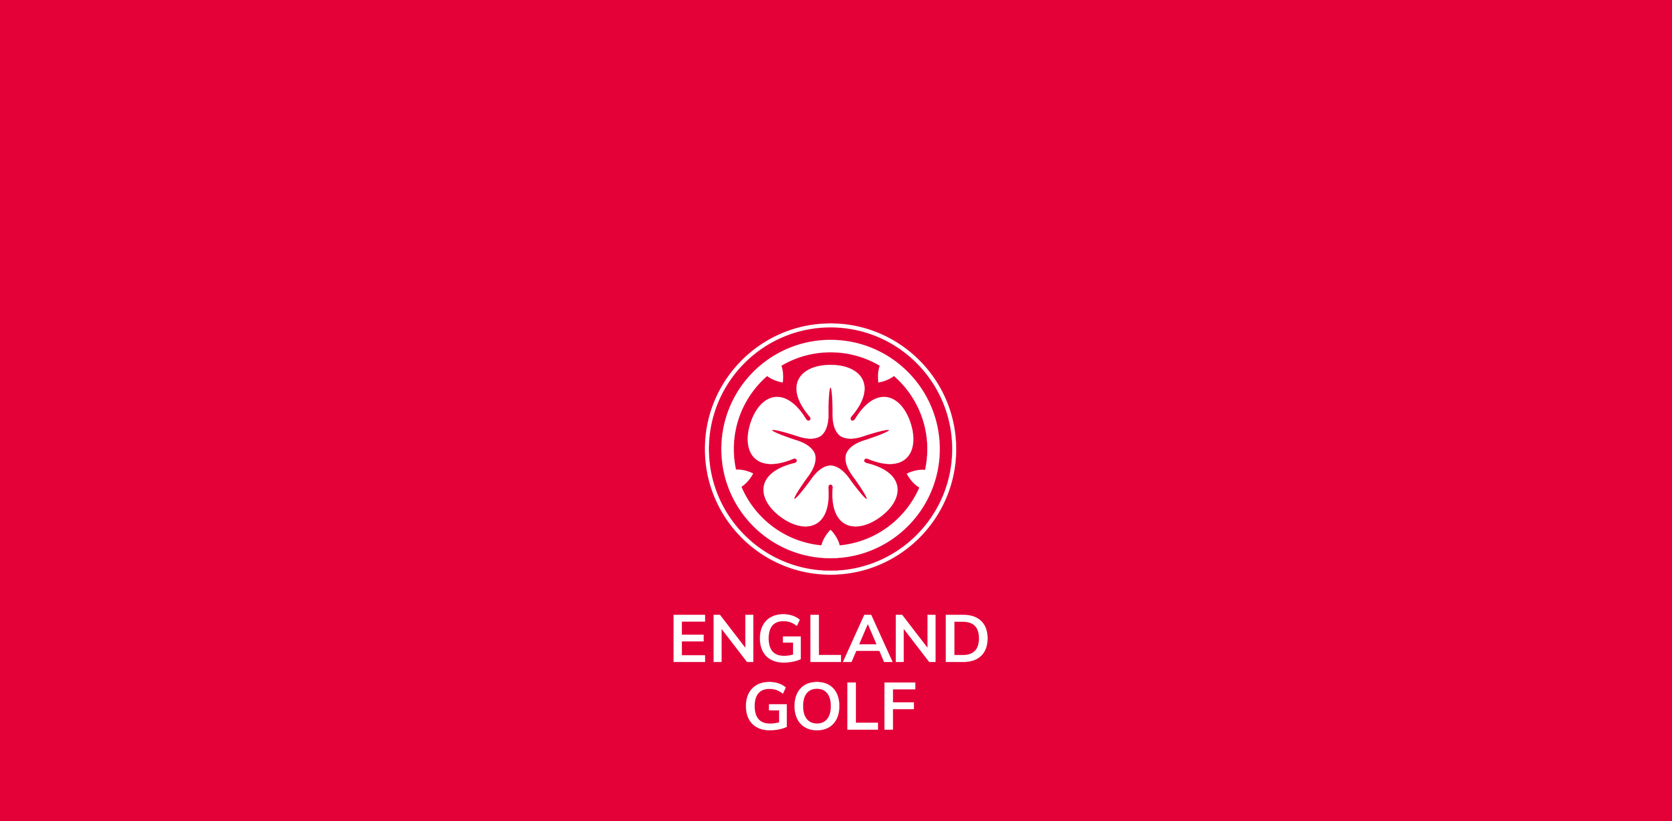 england-golf-petition-confinement-covid-19